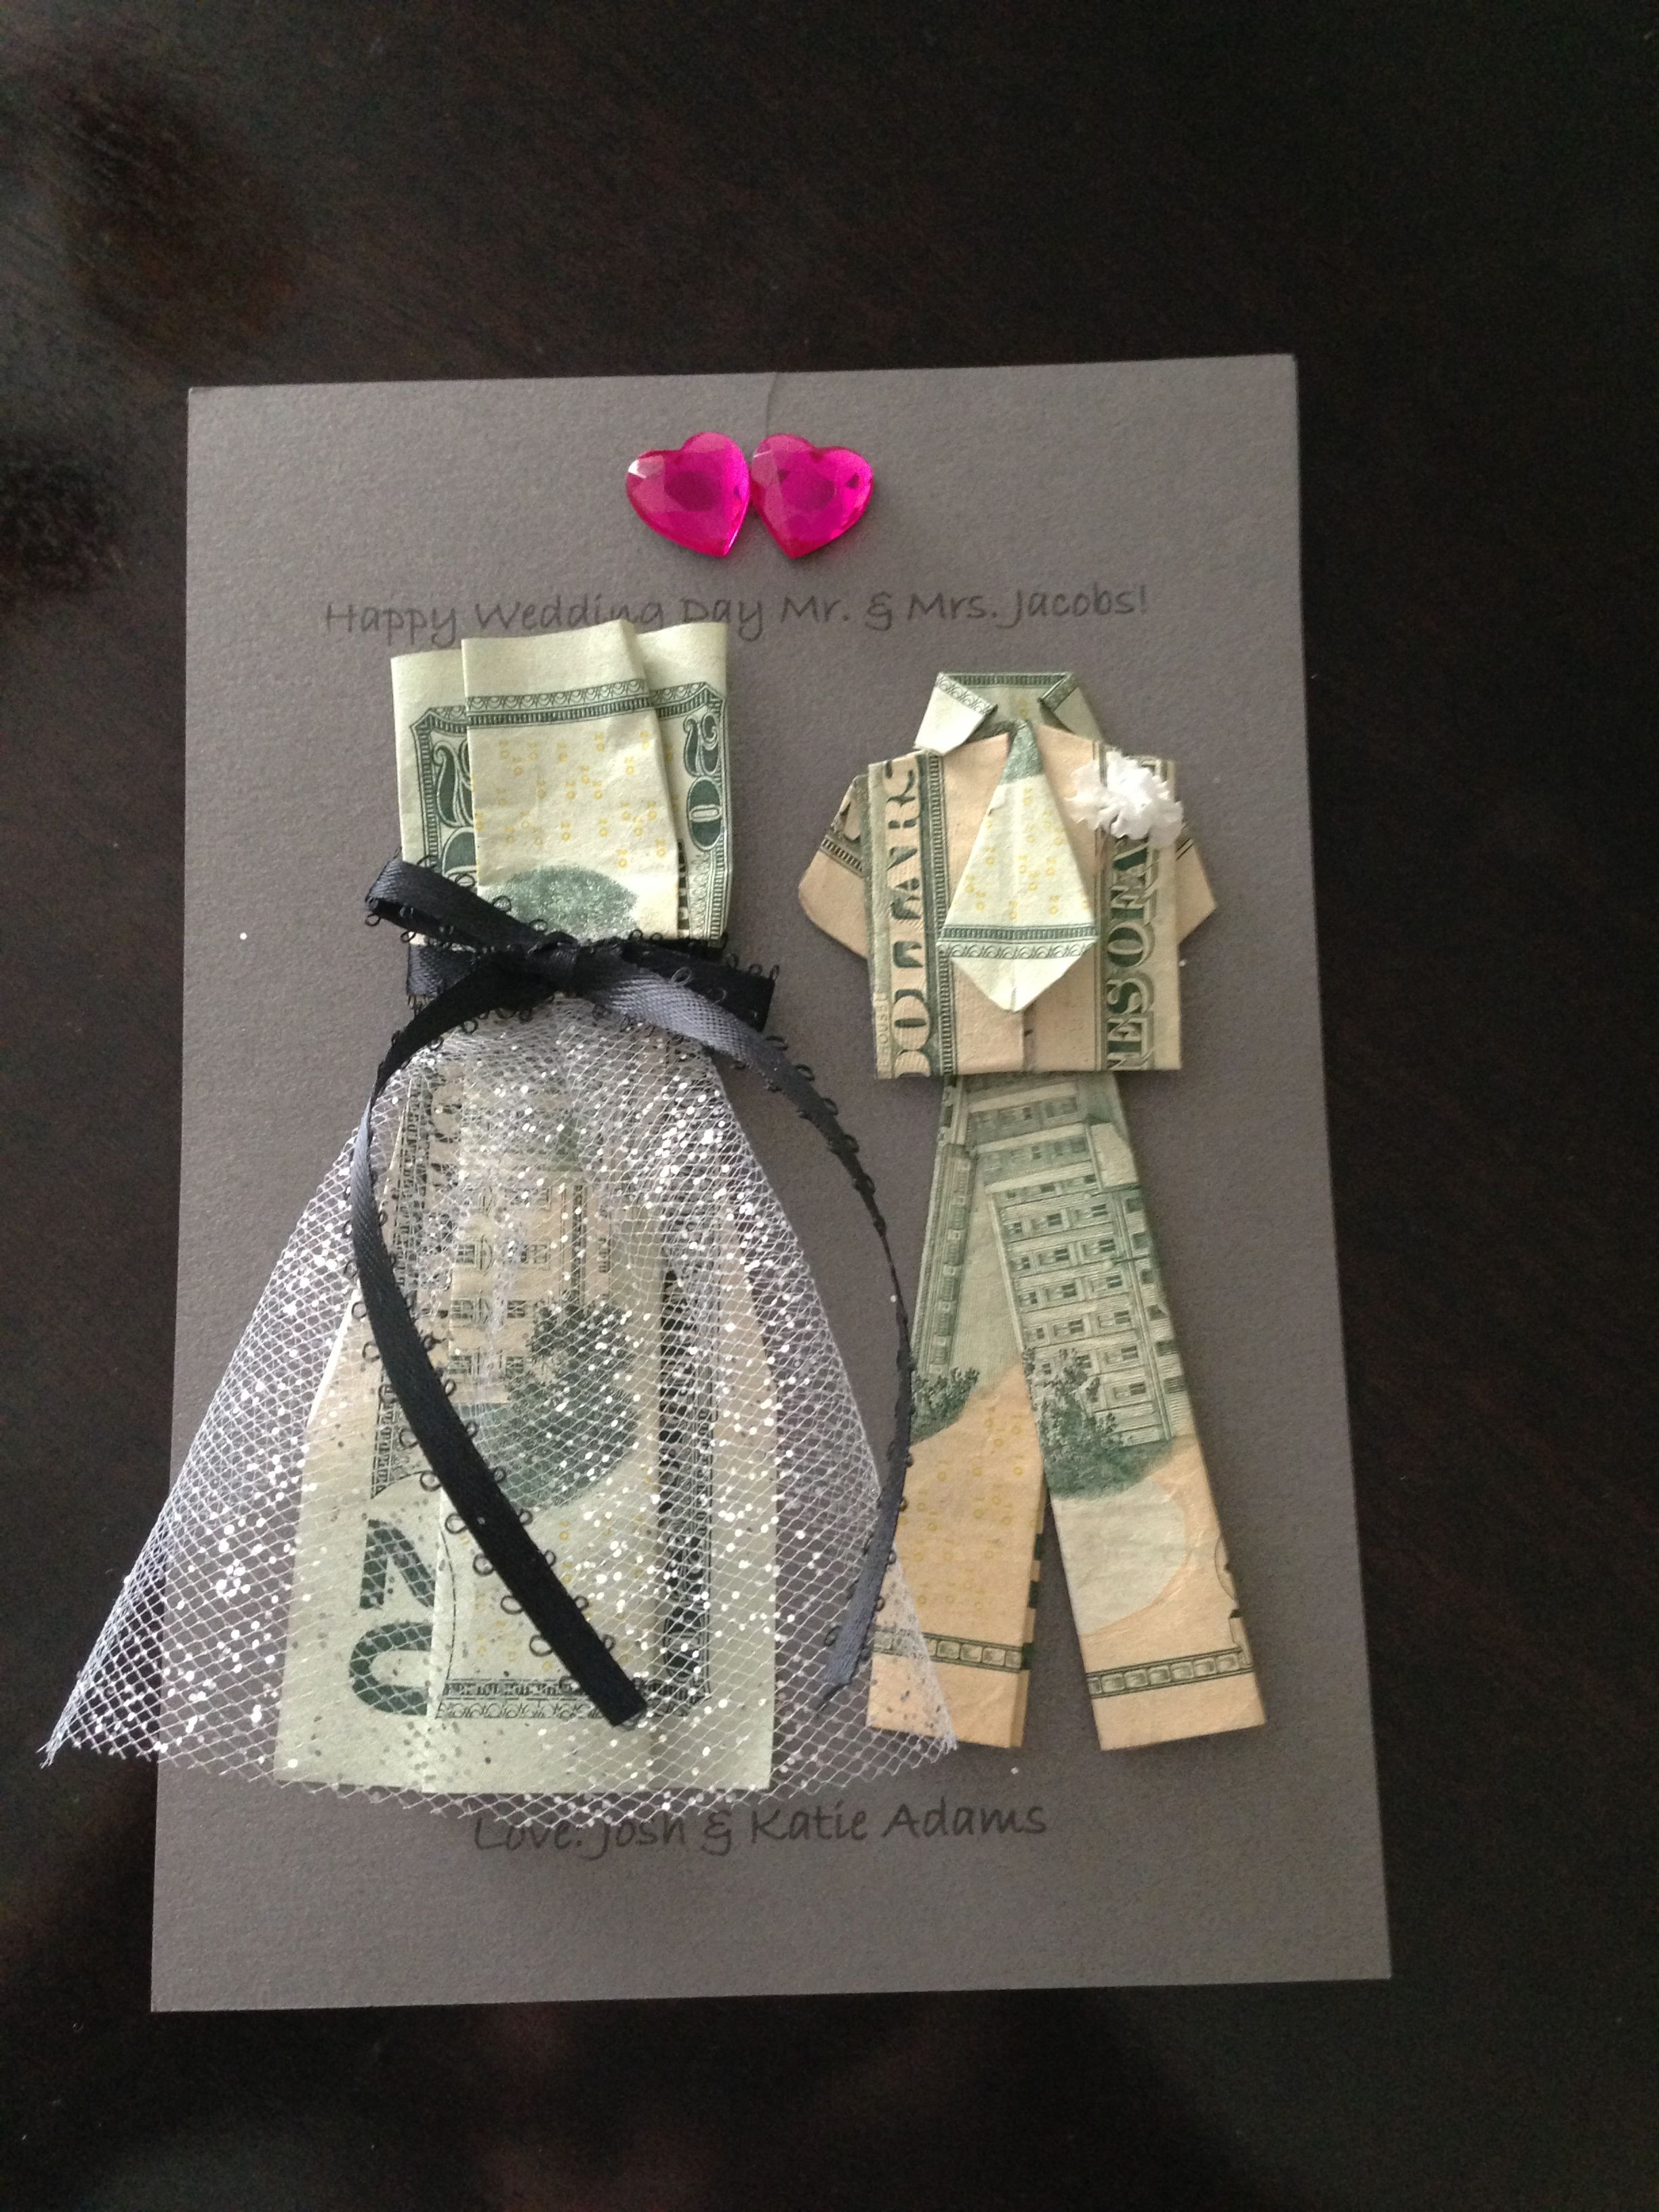 Best ideas about Gift Ideas For A Wedding . Save or Pin Wedding Money Gifts on Pinterest Now.